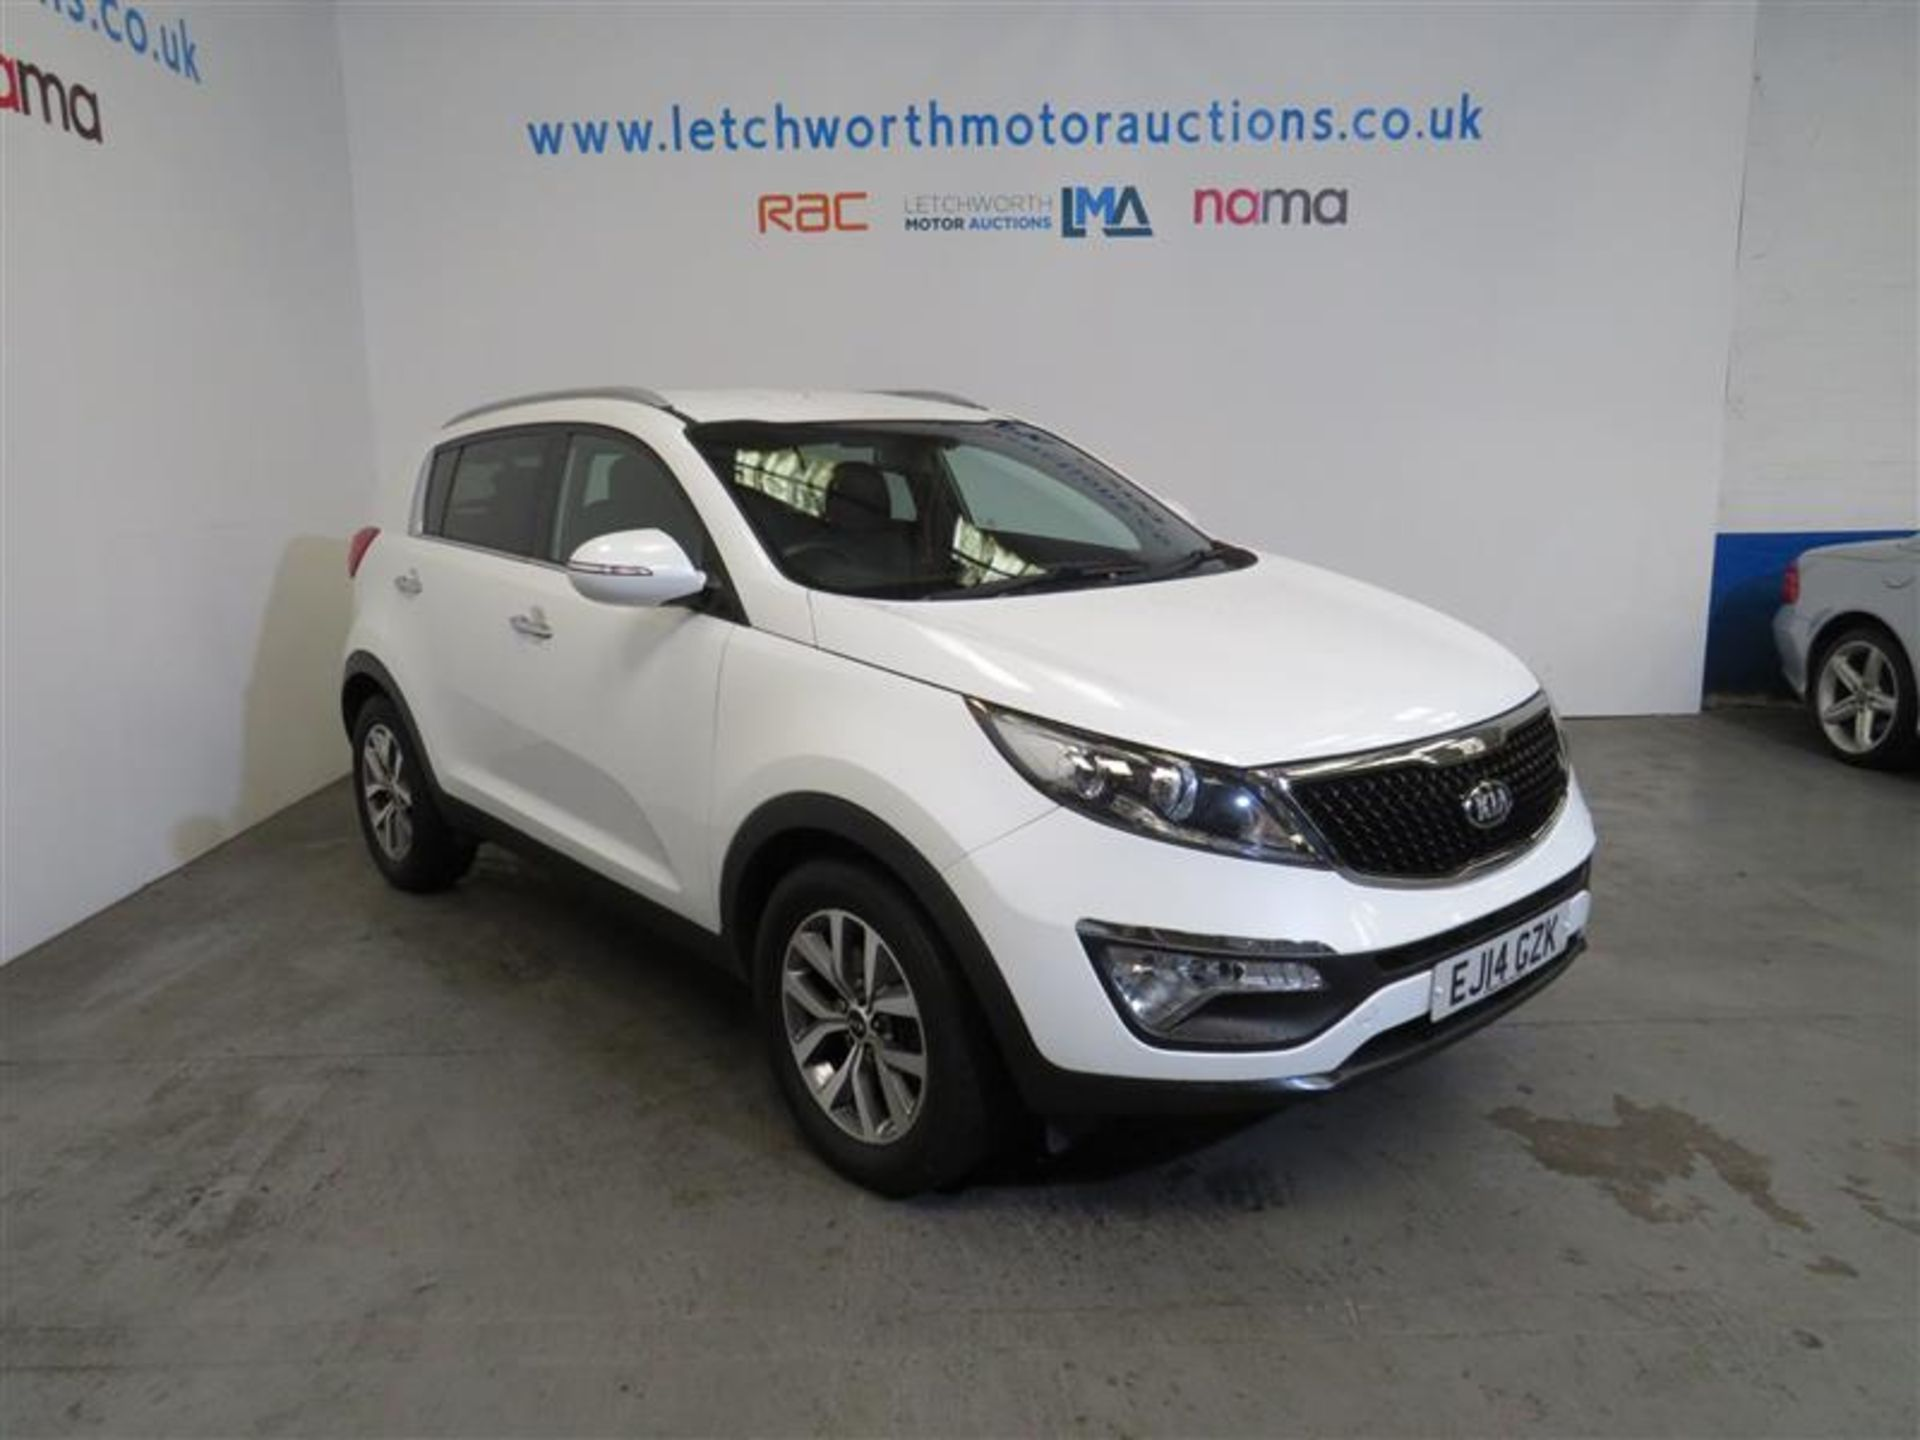 Lot 8 - 2014 Kia Sportage White Edition ISG - 1685cc